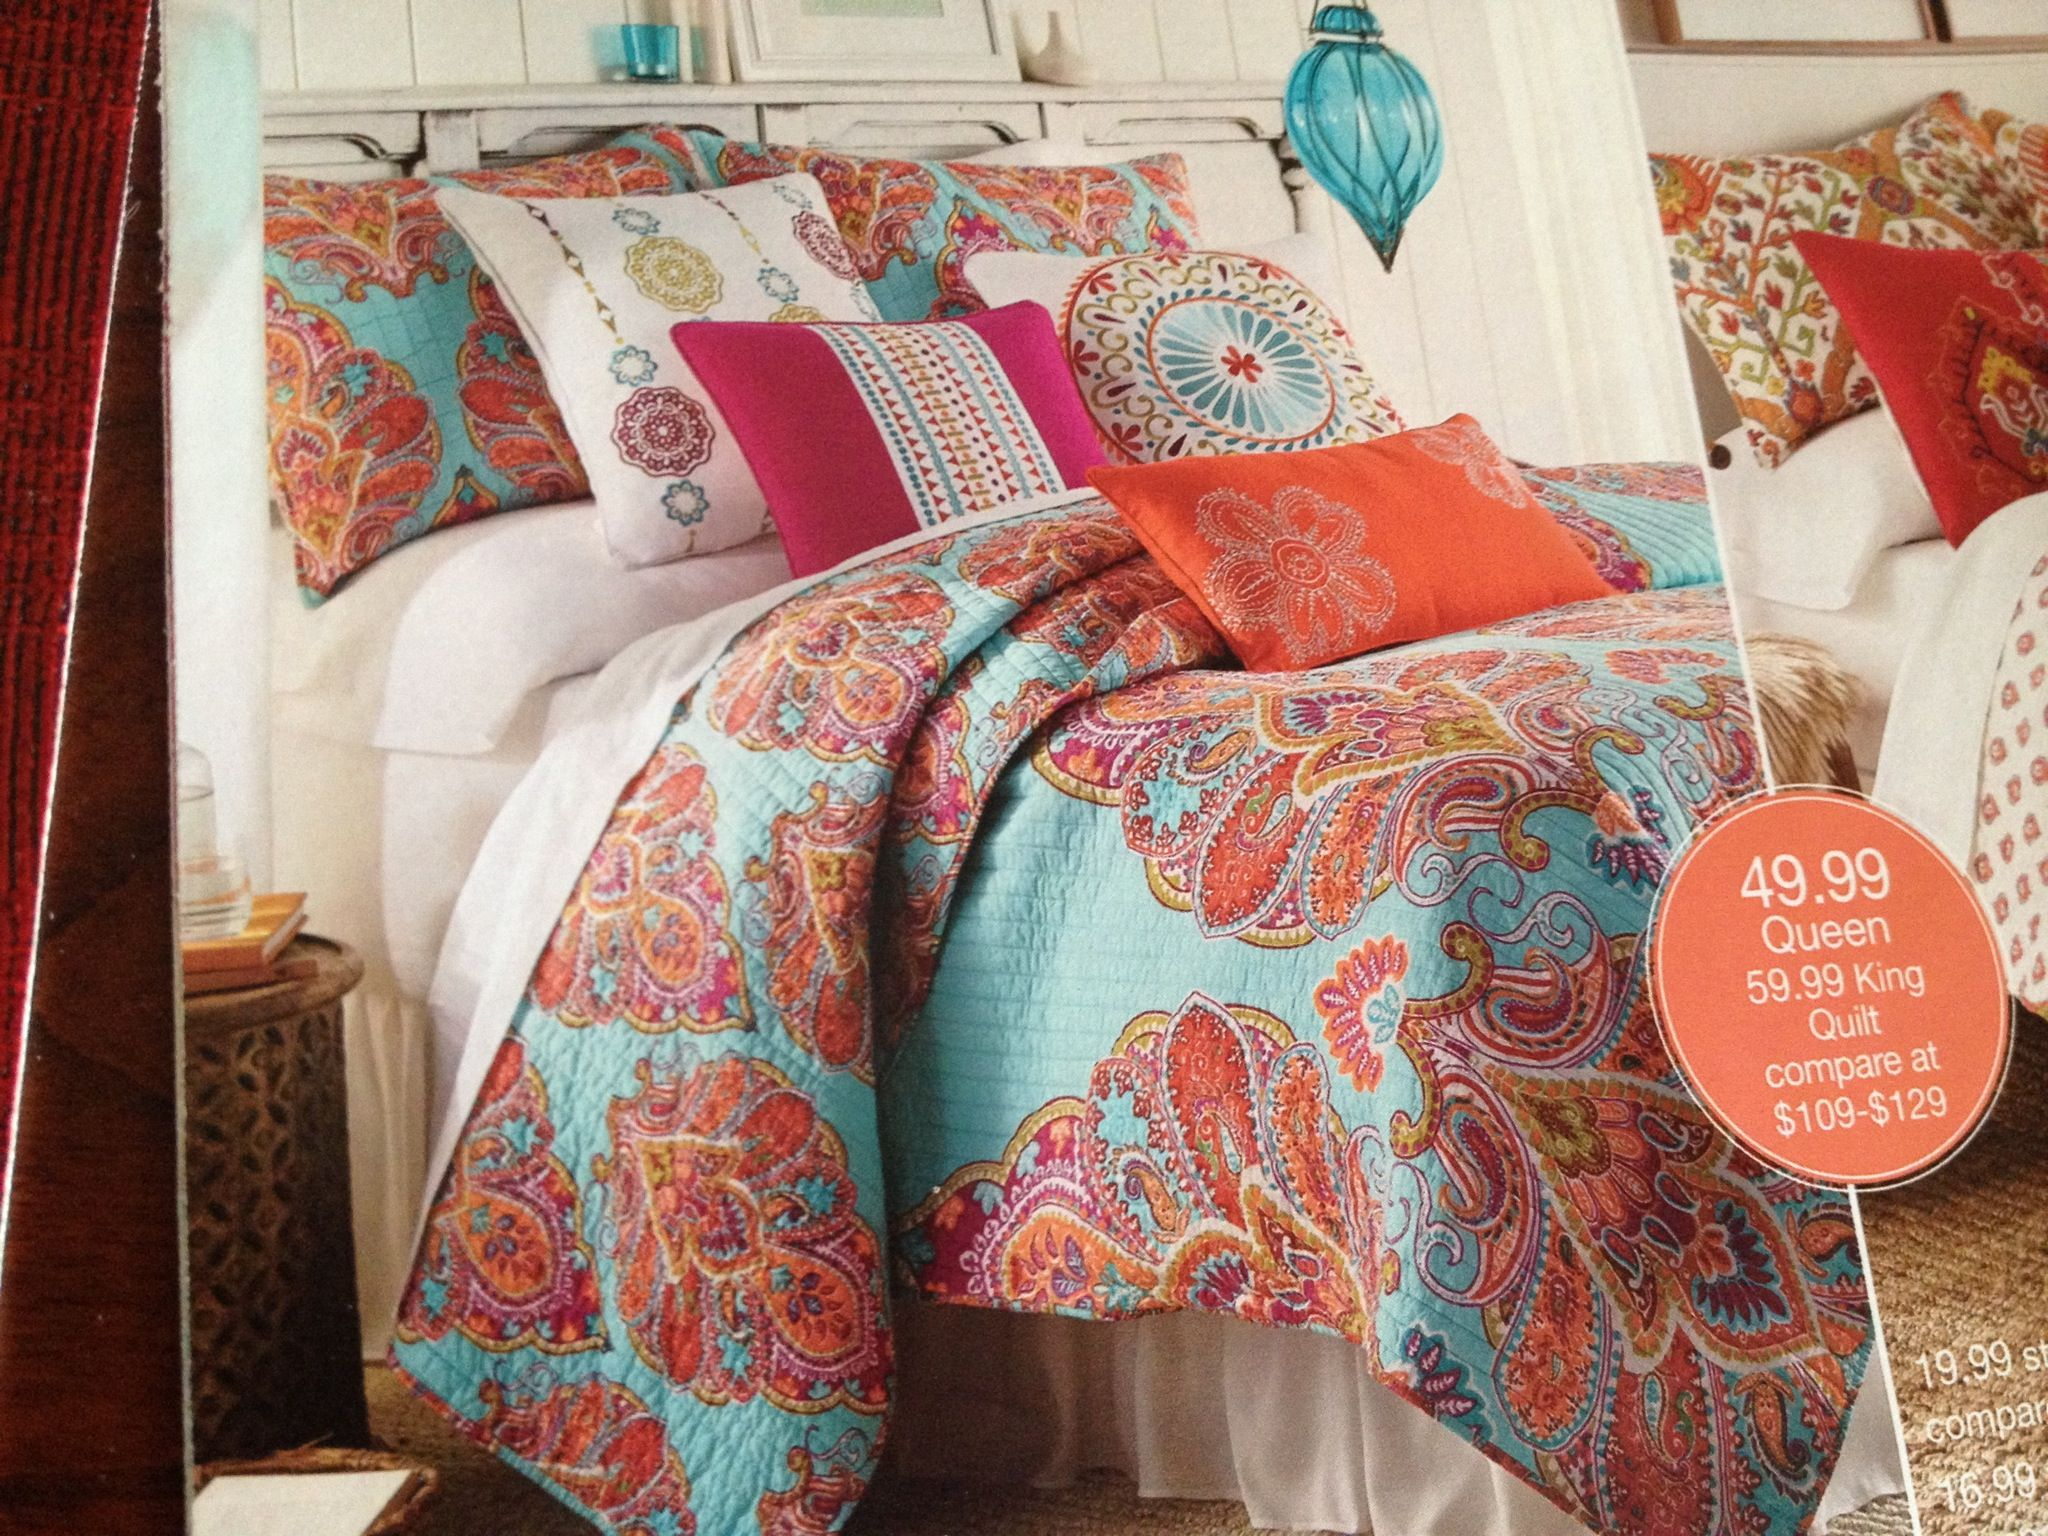 Stein Mart. Tivoli Teal quilt! I'm in love!! College life